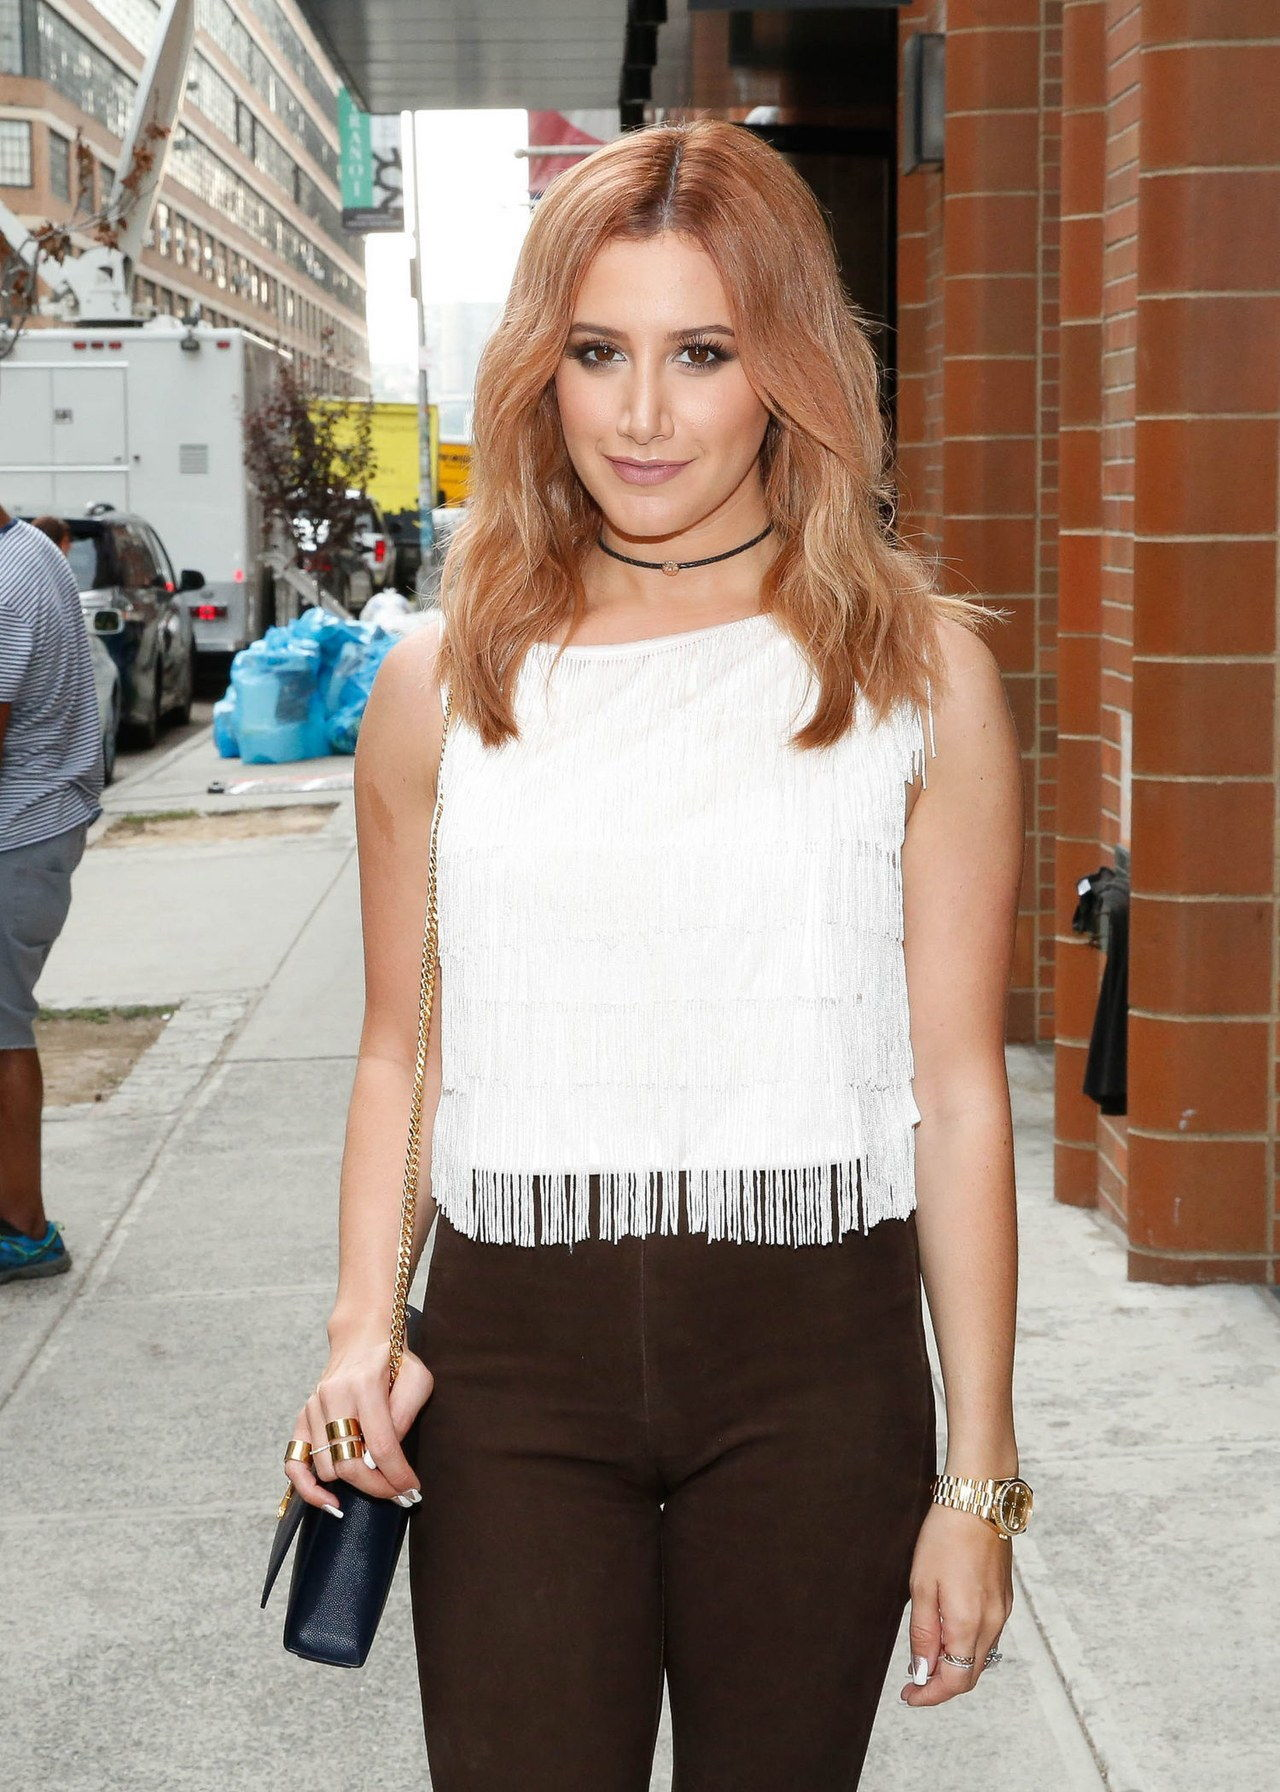 ashley tisdale makeup line announcment